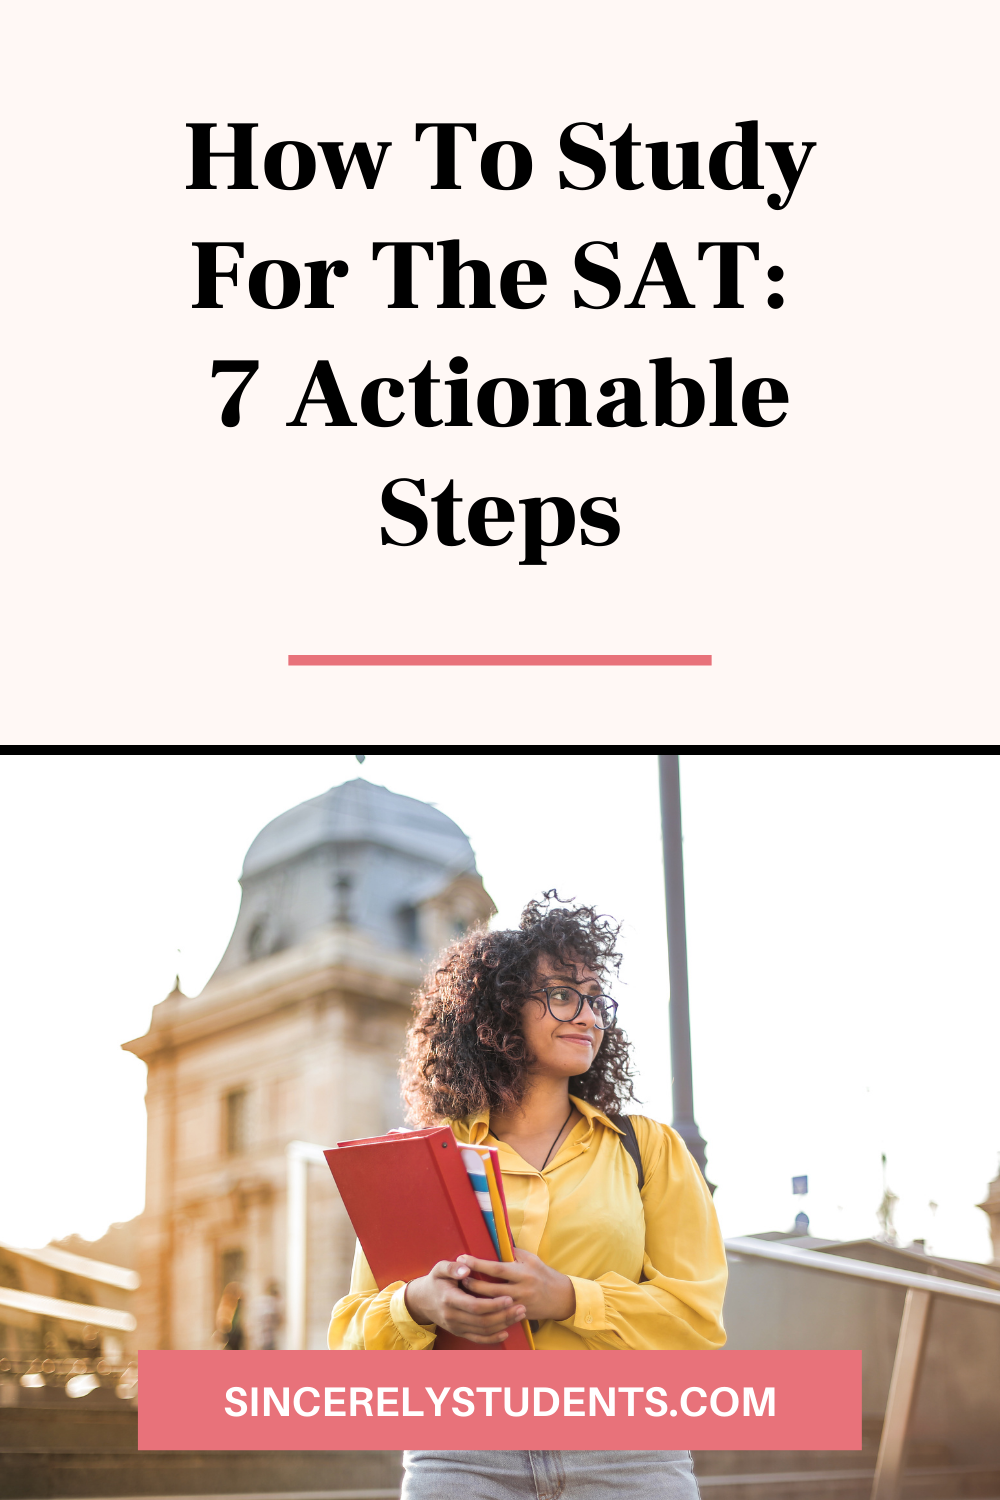 How To Study For The Sat In 7 Actionable Steps Ace The Sat 1600 On The Sat Study Tips For Sat In 2020 Study Tips High School Hacks Sats